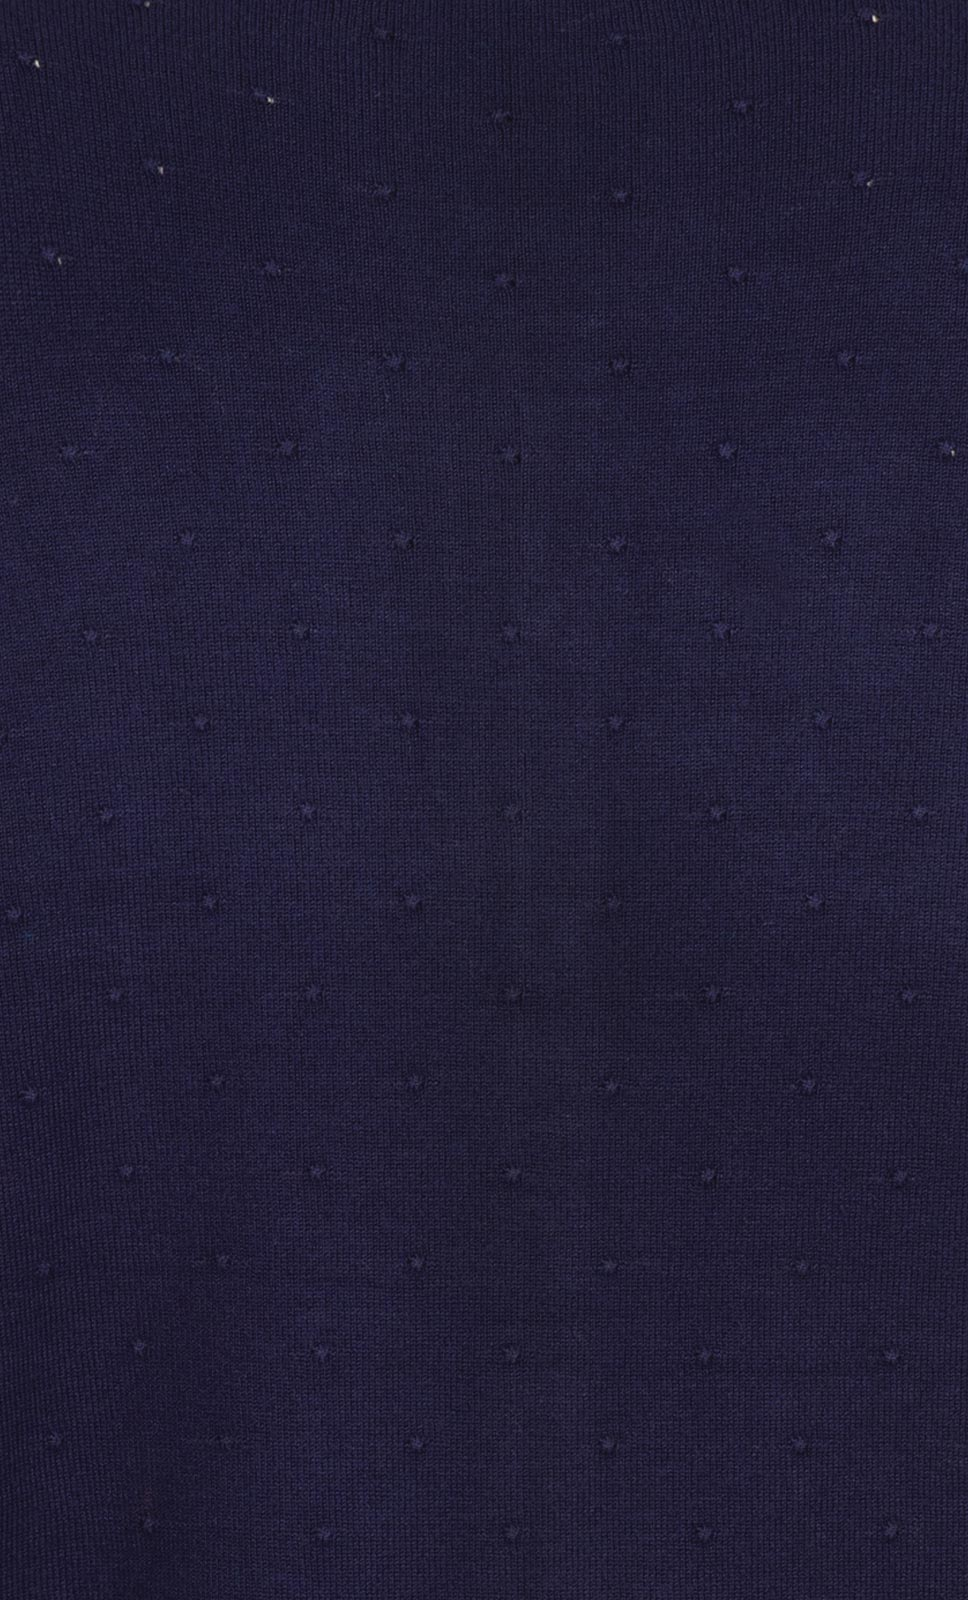 Droplet-Dark-Navy